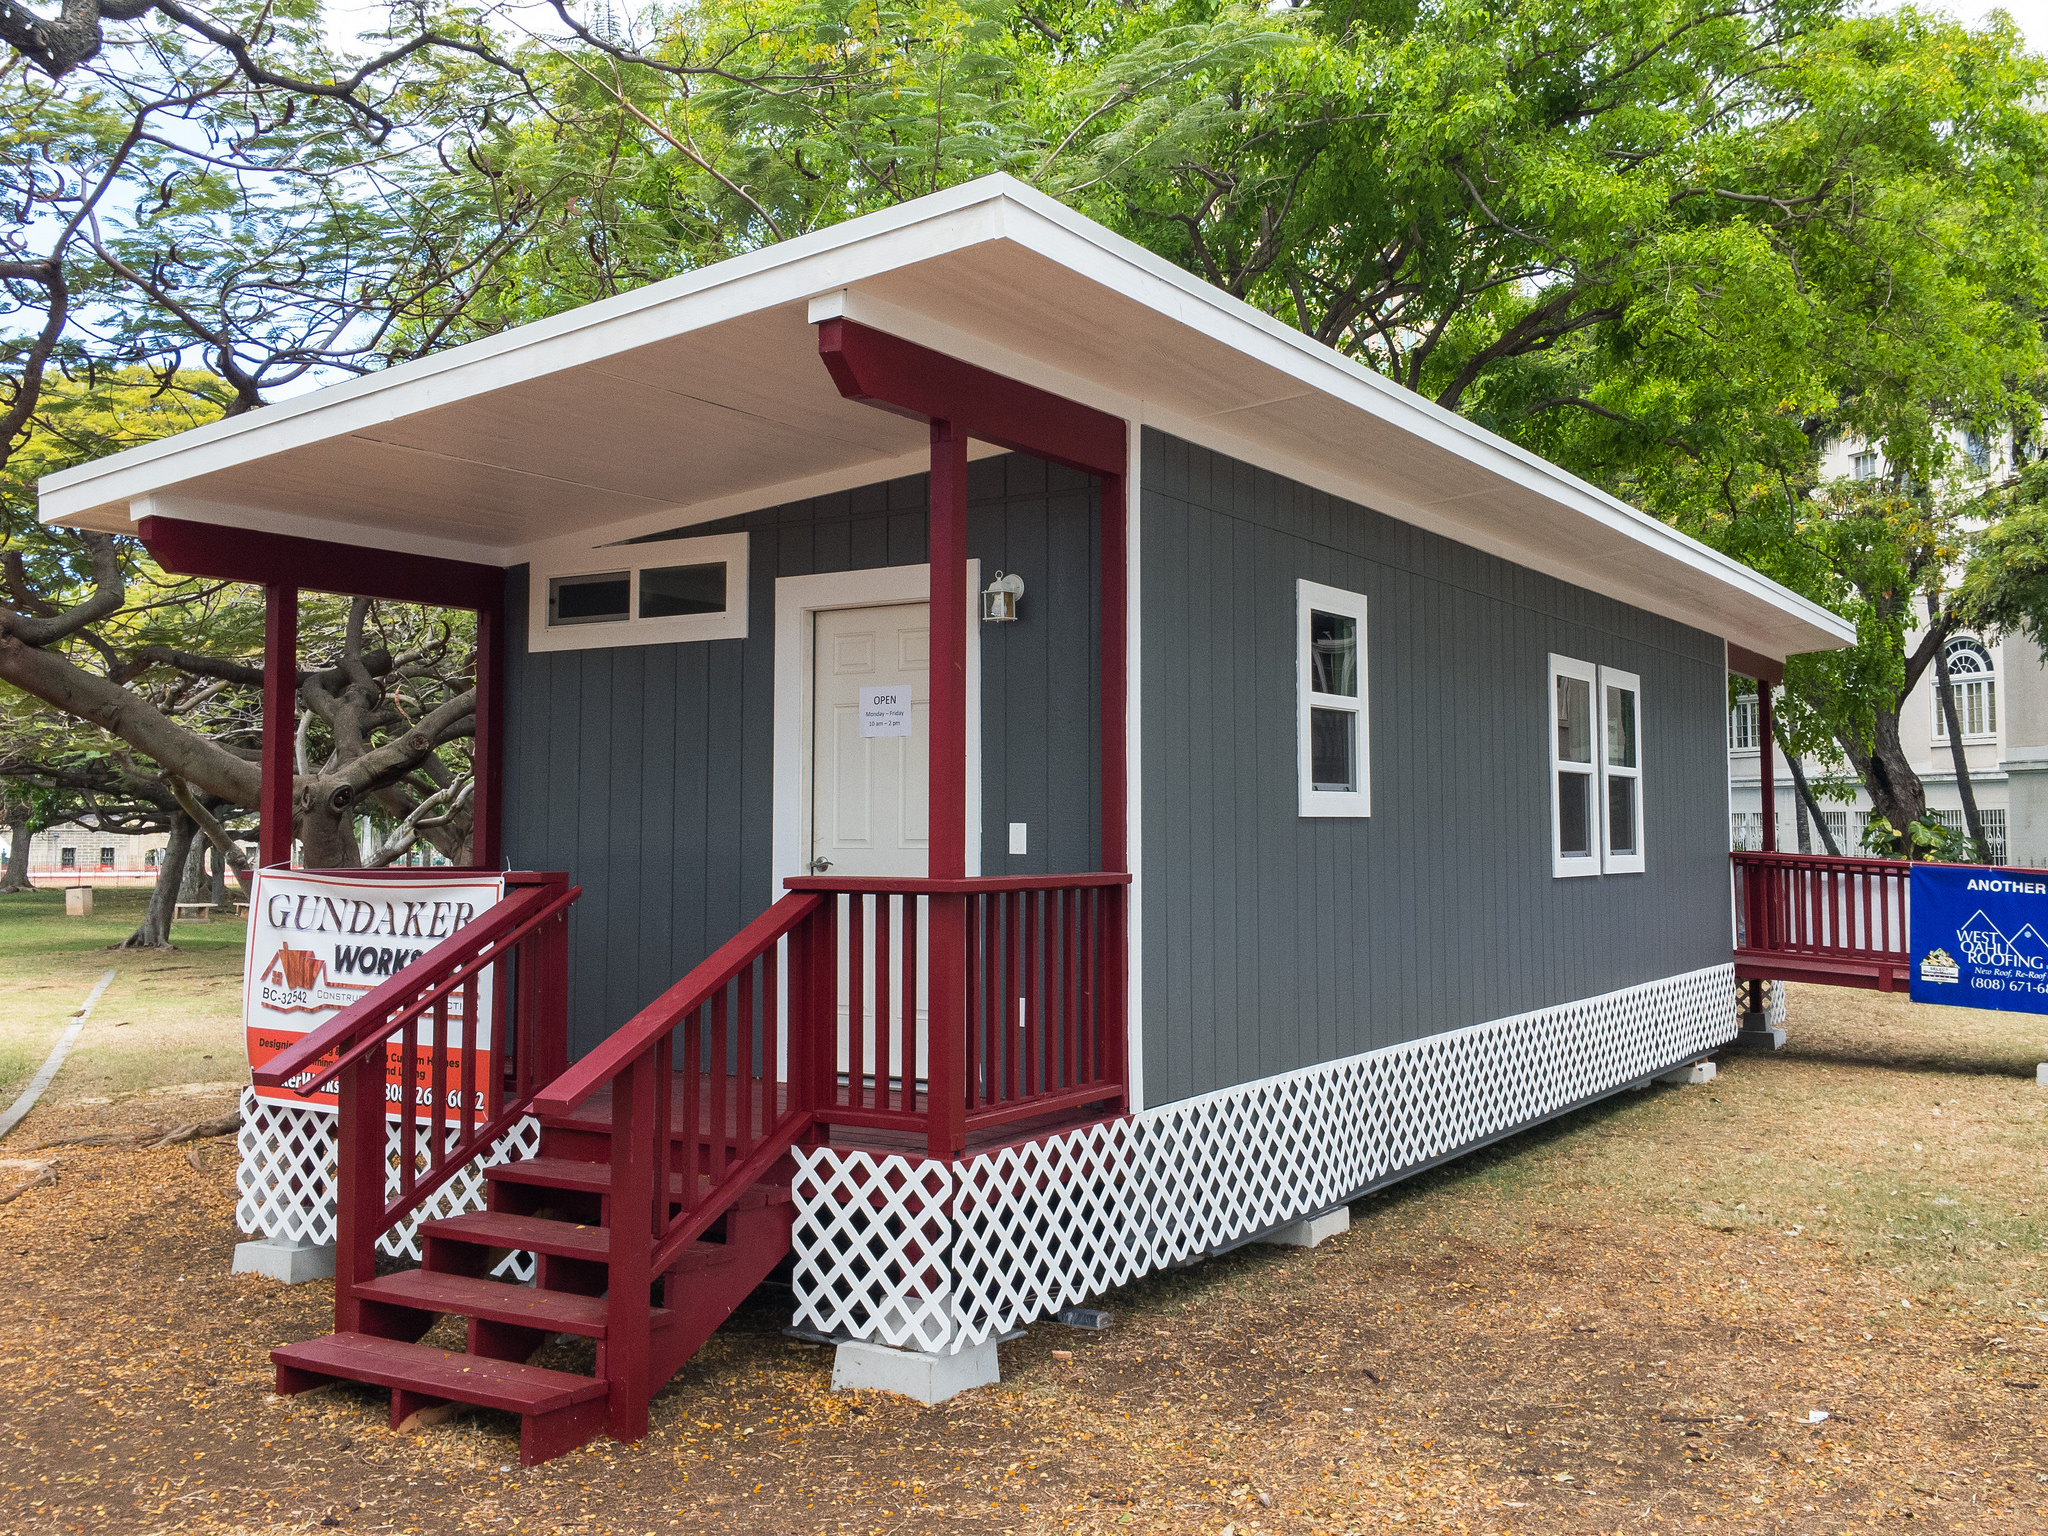 Commissioners set hearing to discuss accessory dwelling units